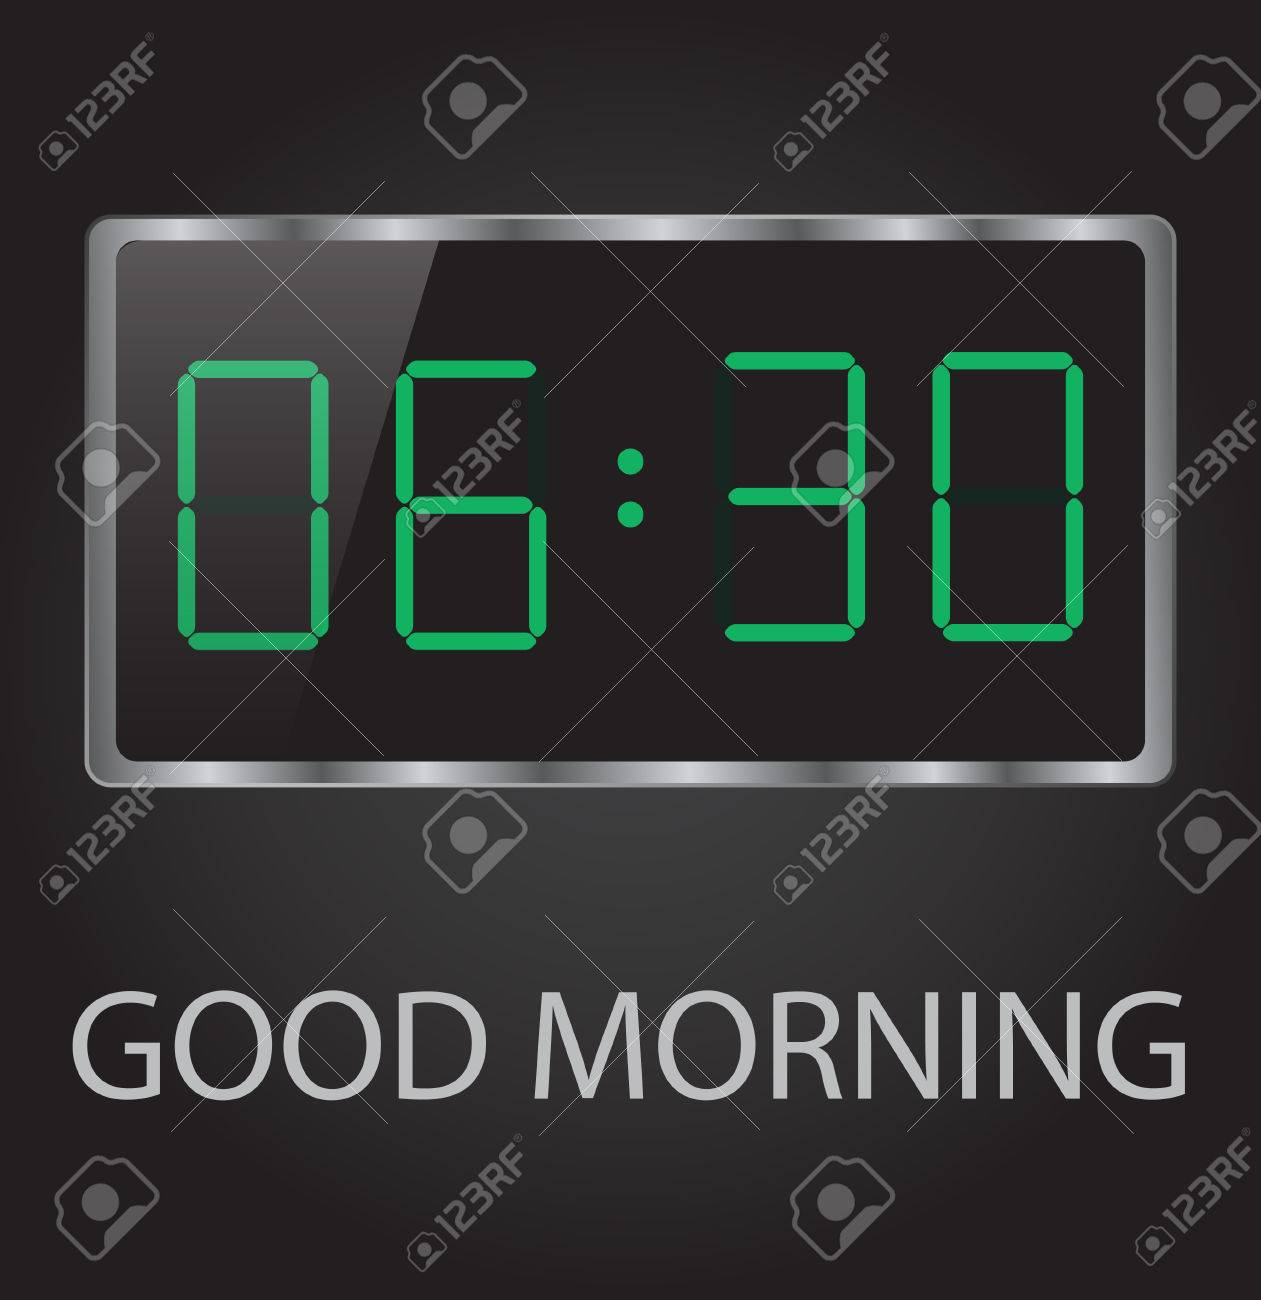 good morning time 6-30 early wake up clock Stock Vector - 26566961